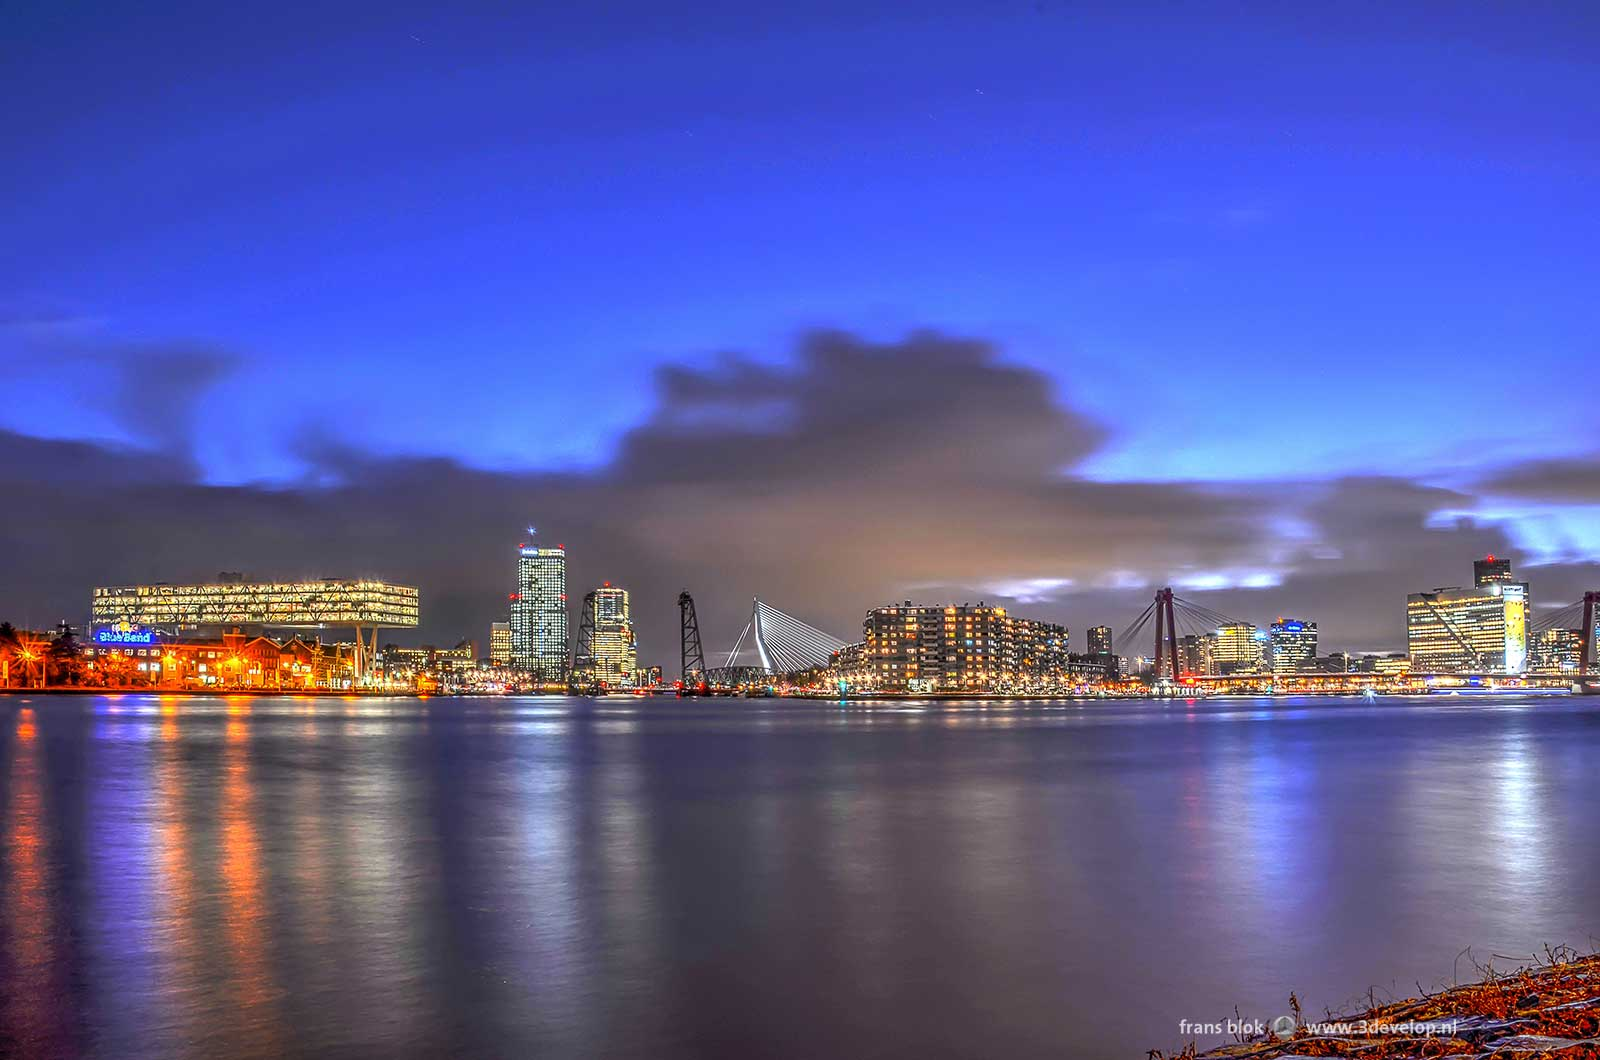 Evening image of Rotterdam and the river Nieuwe Maas made not long after sunset